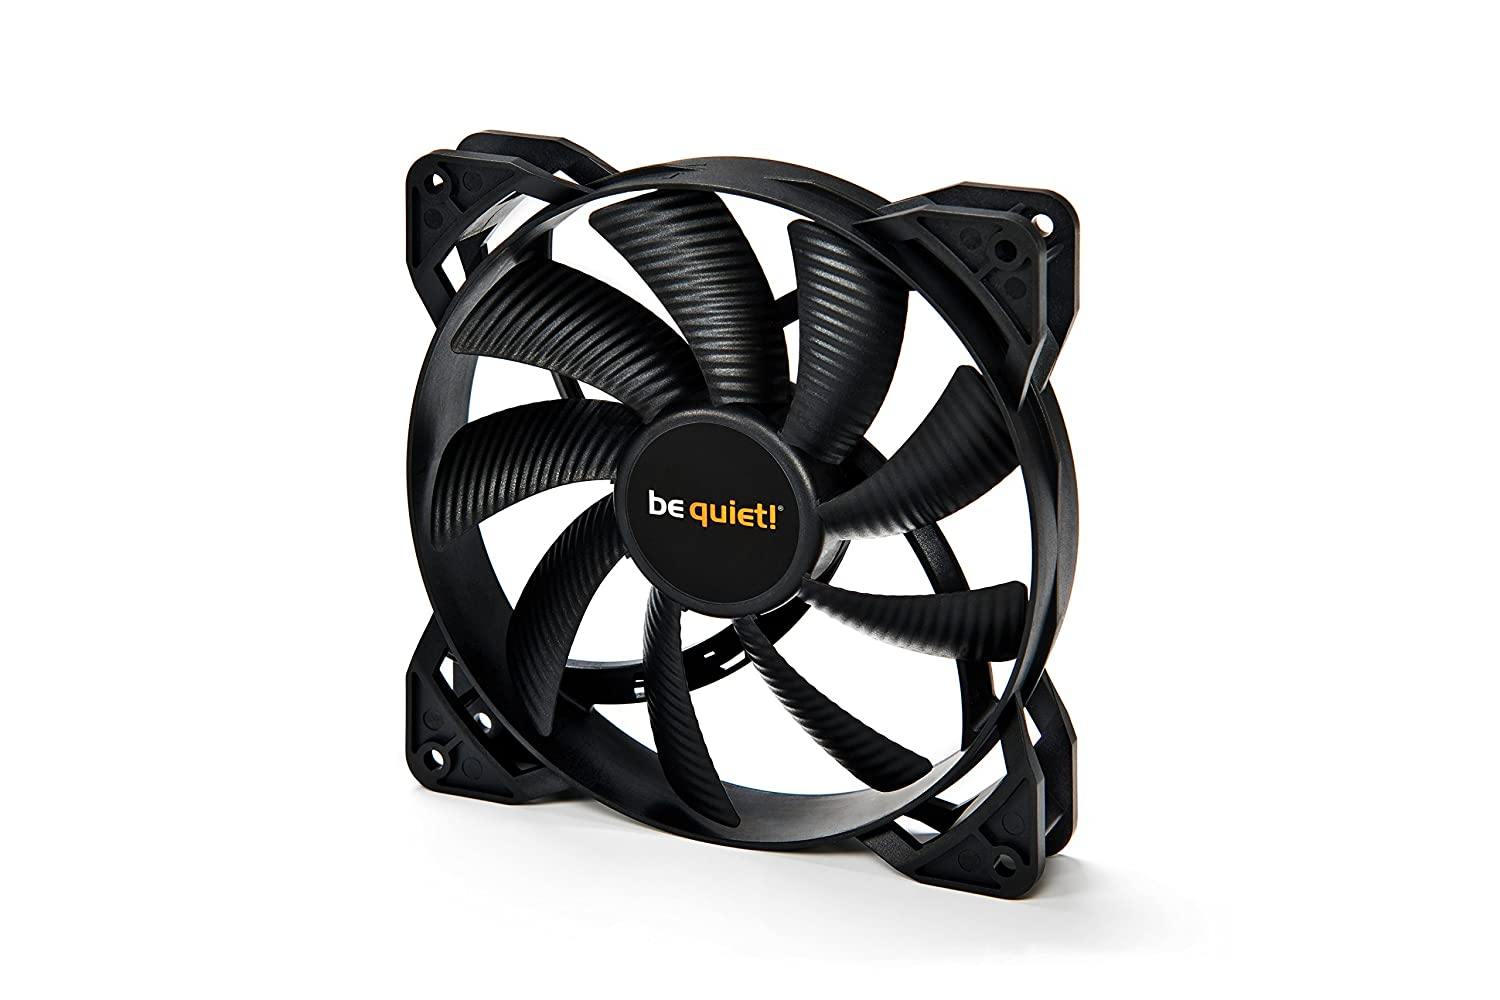 be quiet! Pure Wings 2 120mm PWM high-Speed, BL081, Cooling Fan